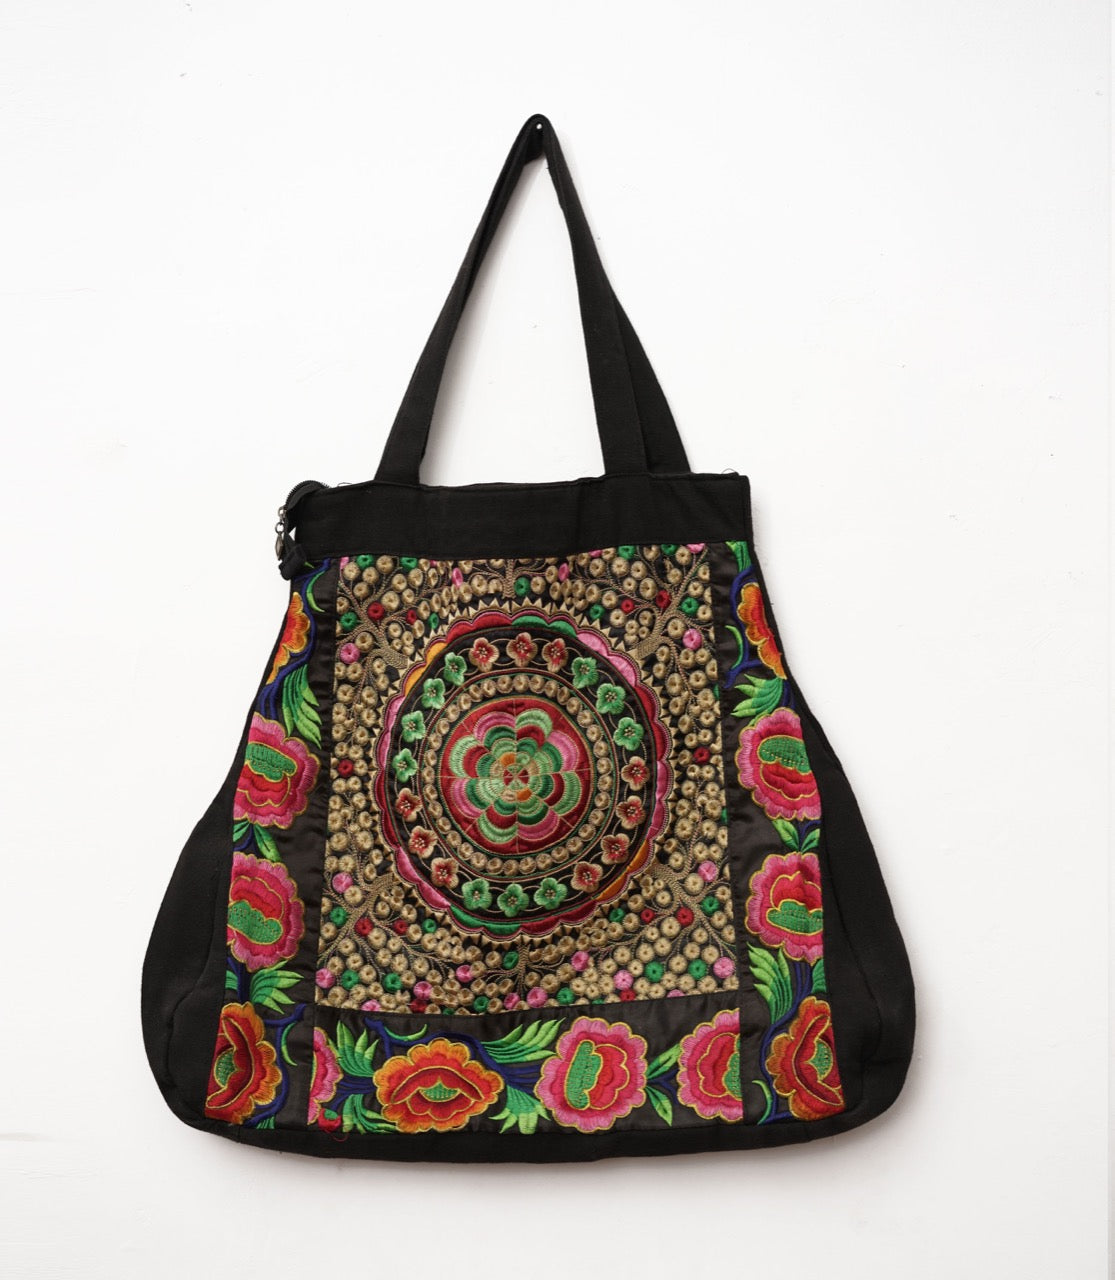 Ethnic Embroidery bag